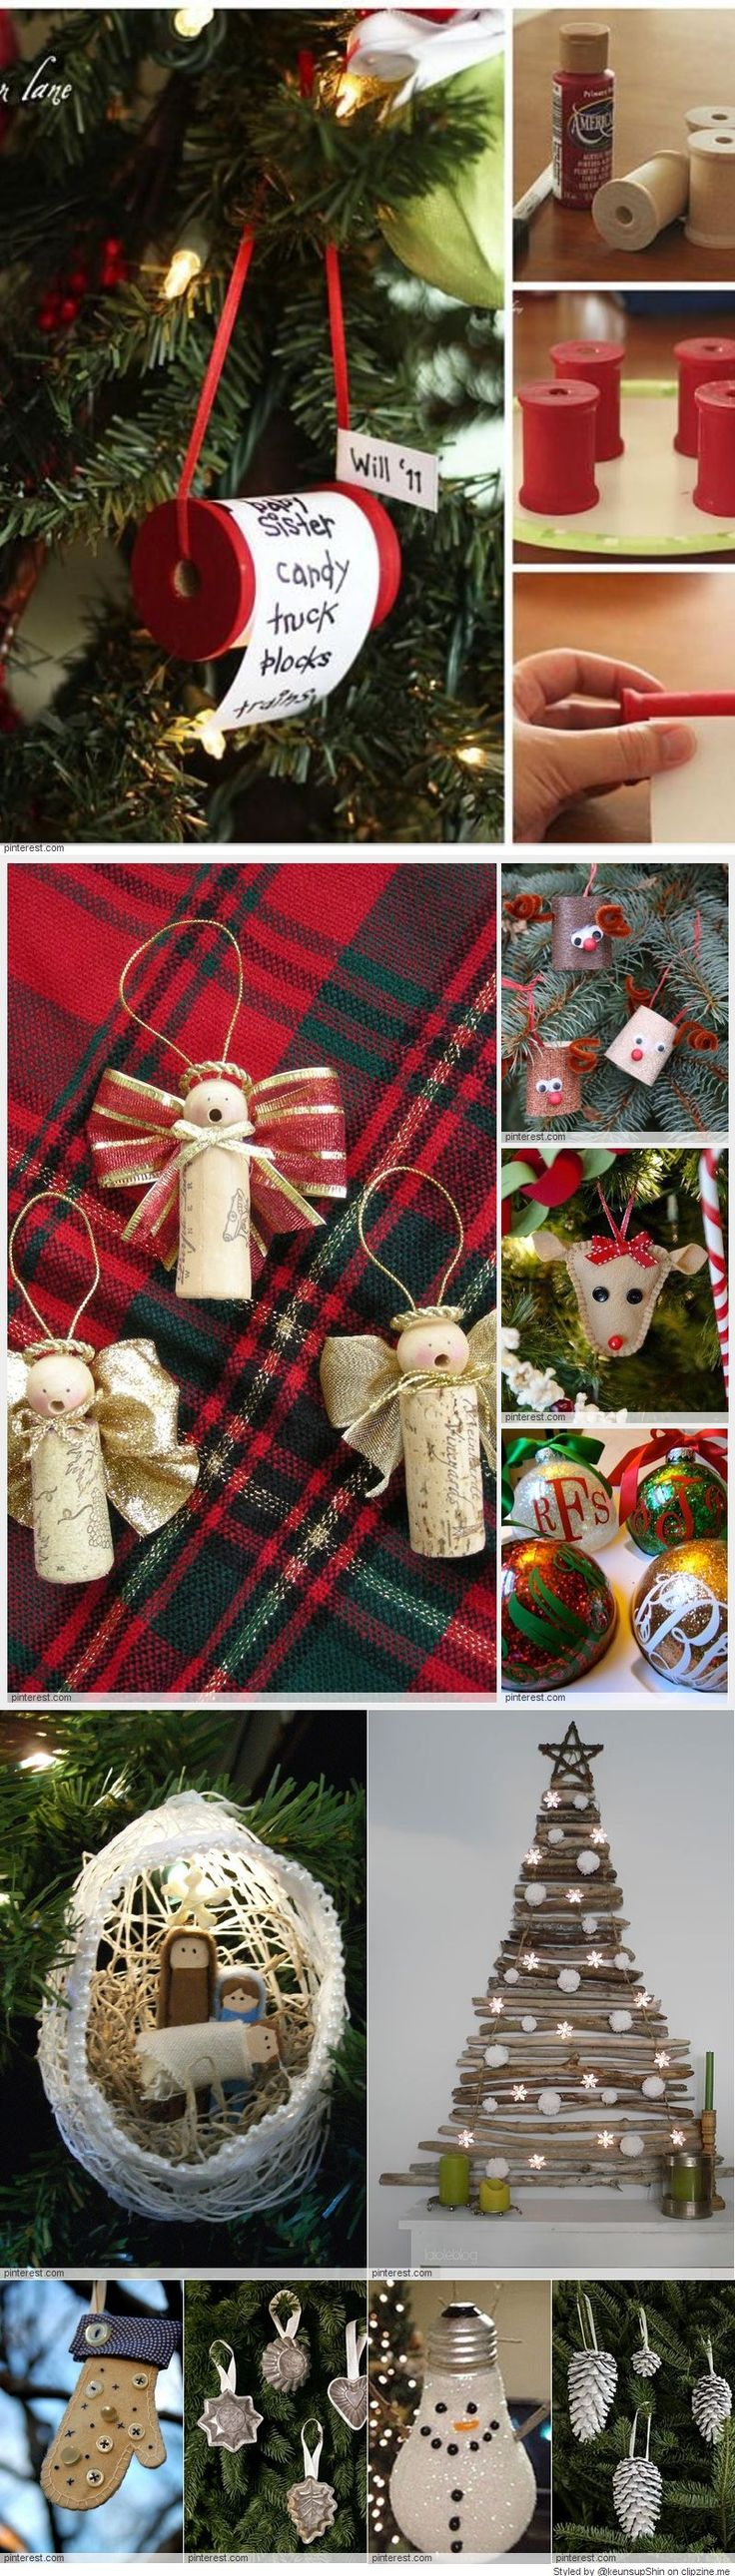 Best 25+ Homemade Christmas Tree Decorations Ideas On Pinterest  Diy Christmas  Ornaments, Christmas Ornaments To Make And Christmas Tree Ornaments